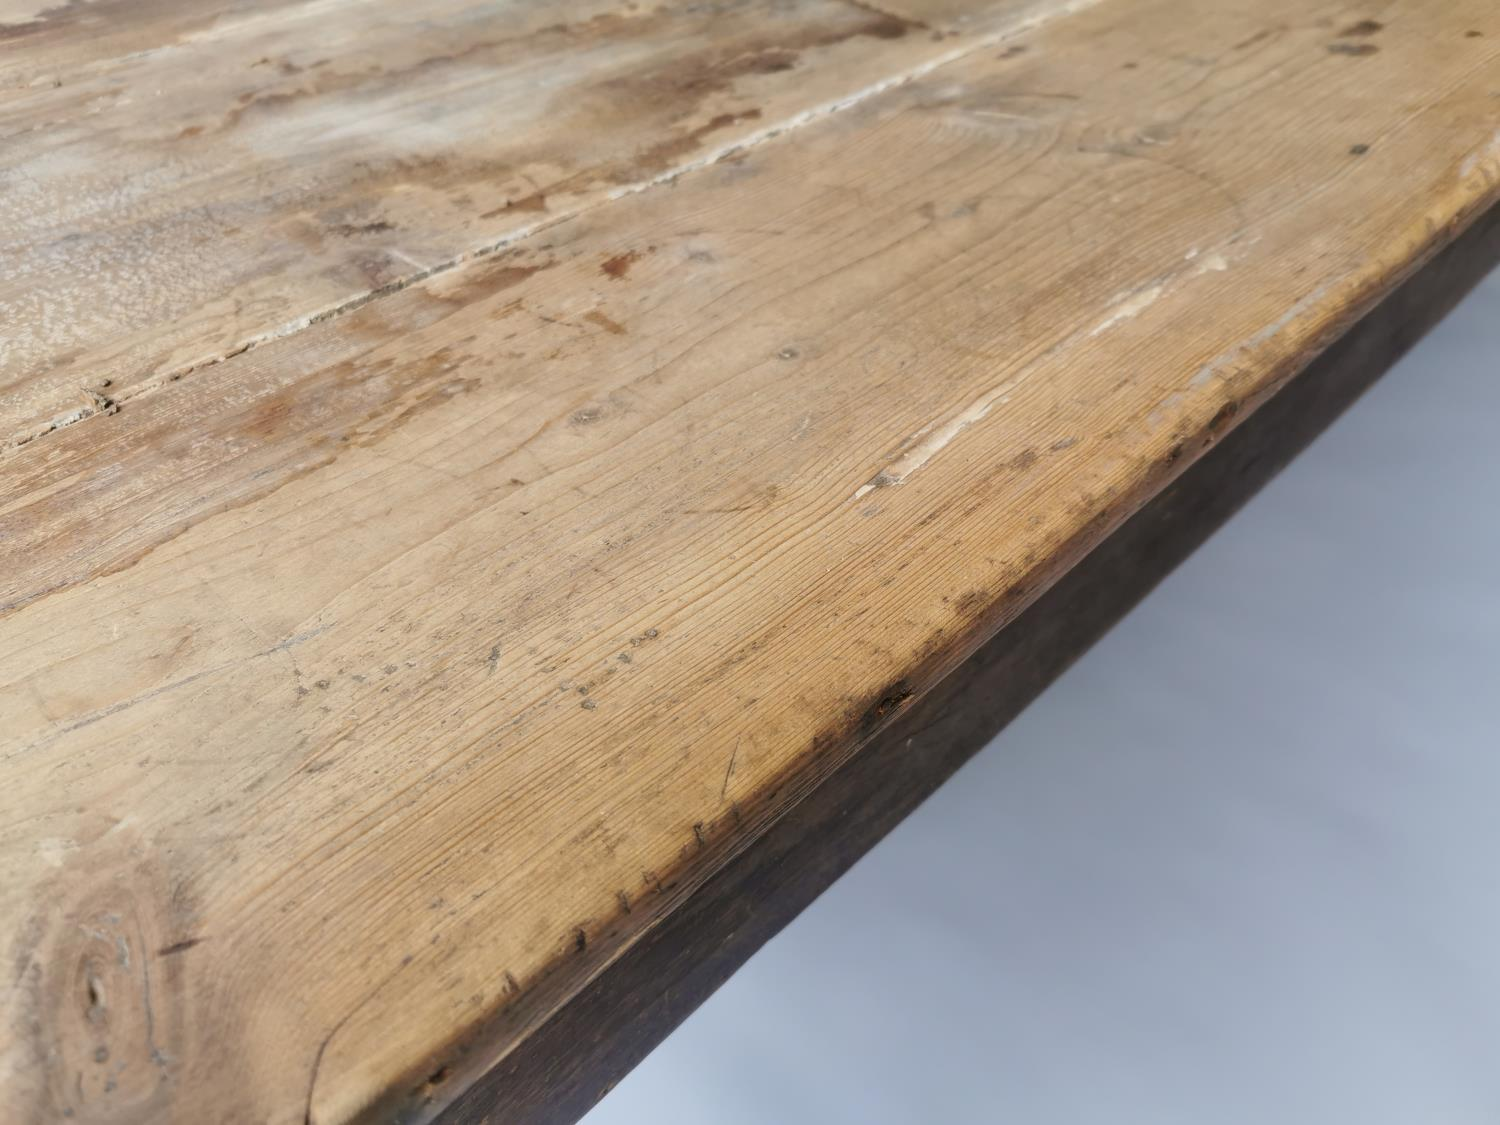 19th C. pine and oak kitchen table on square tapered legs 70 cm H x 198 cm L x 79 cm D - Image 3 of 5